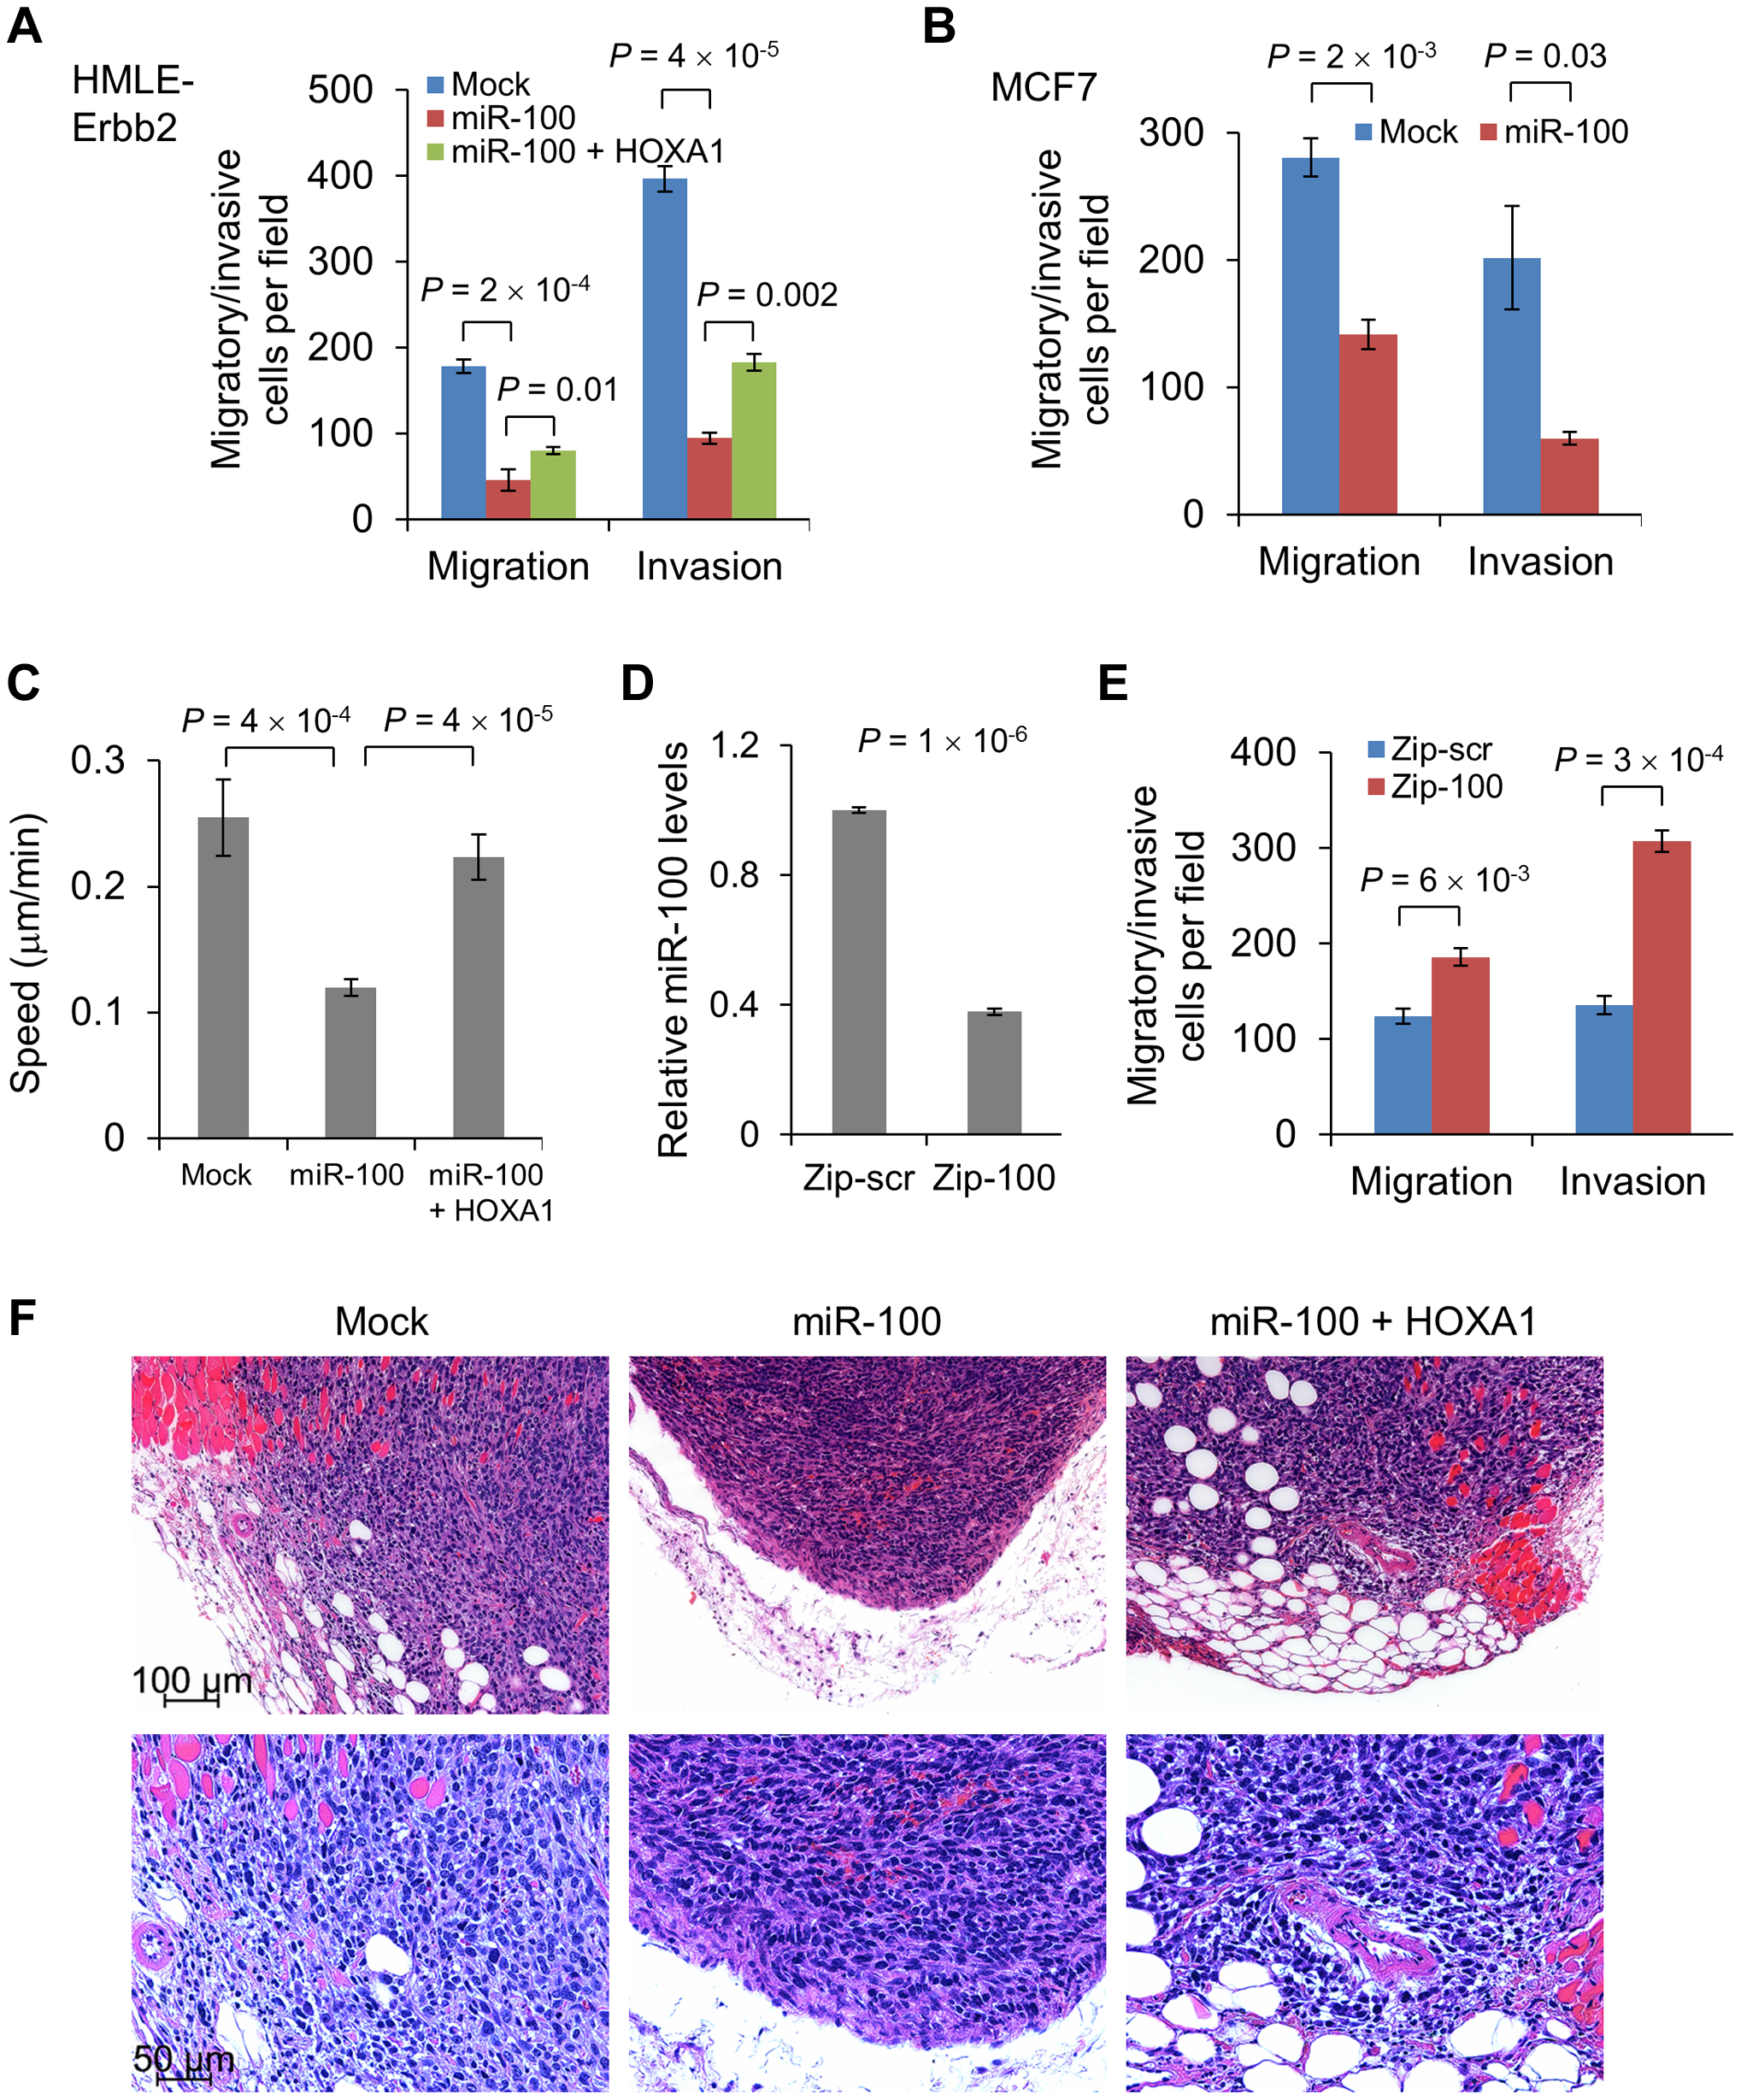 miR-100 inhibits migration and invasion by targeting <i>HOXA1</i>.